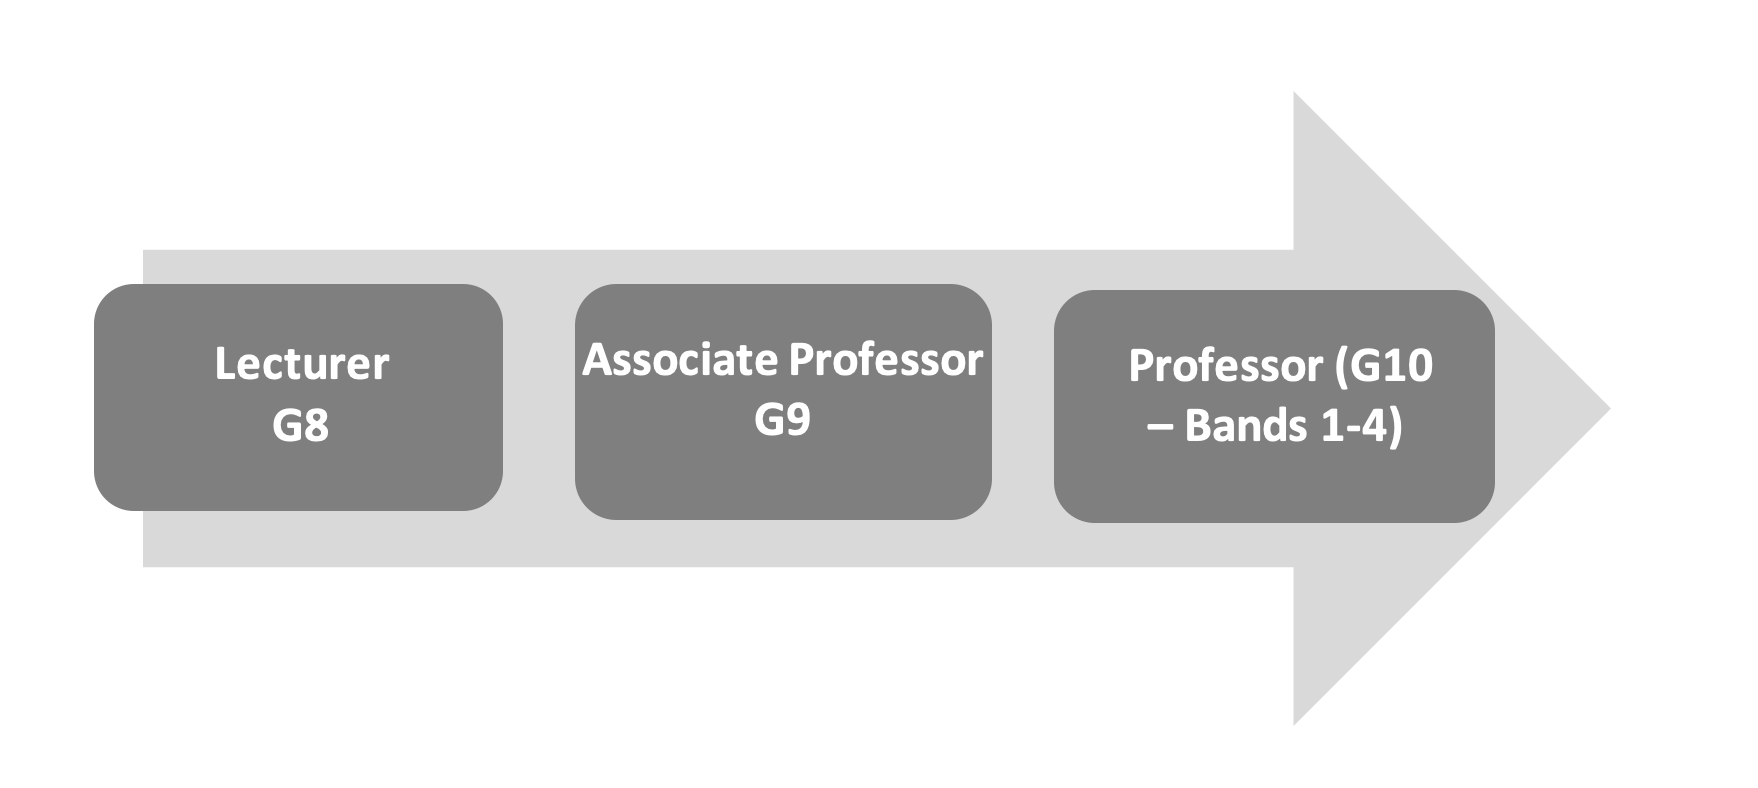 Standard academic promotion route. Lecturer Grade 8, Associate Professor Grade 9, Professor Grade 10 – bands 1-4